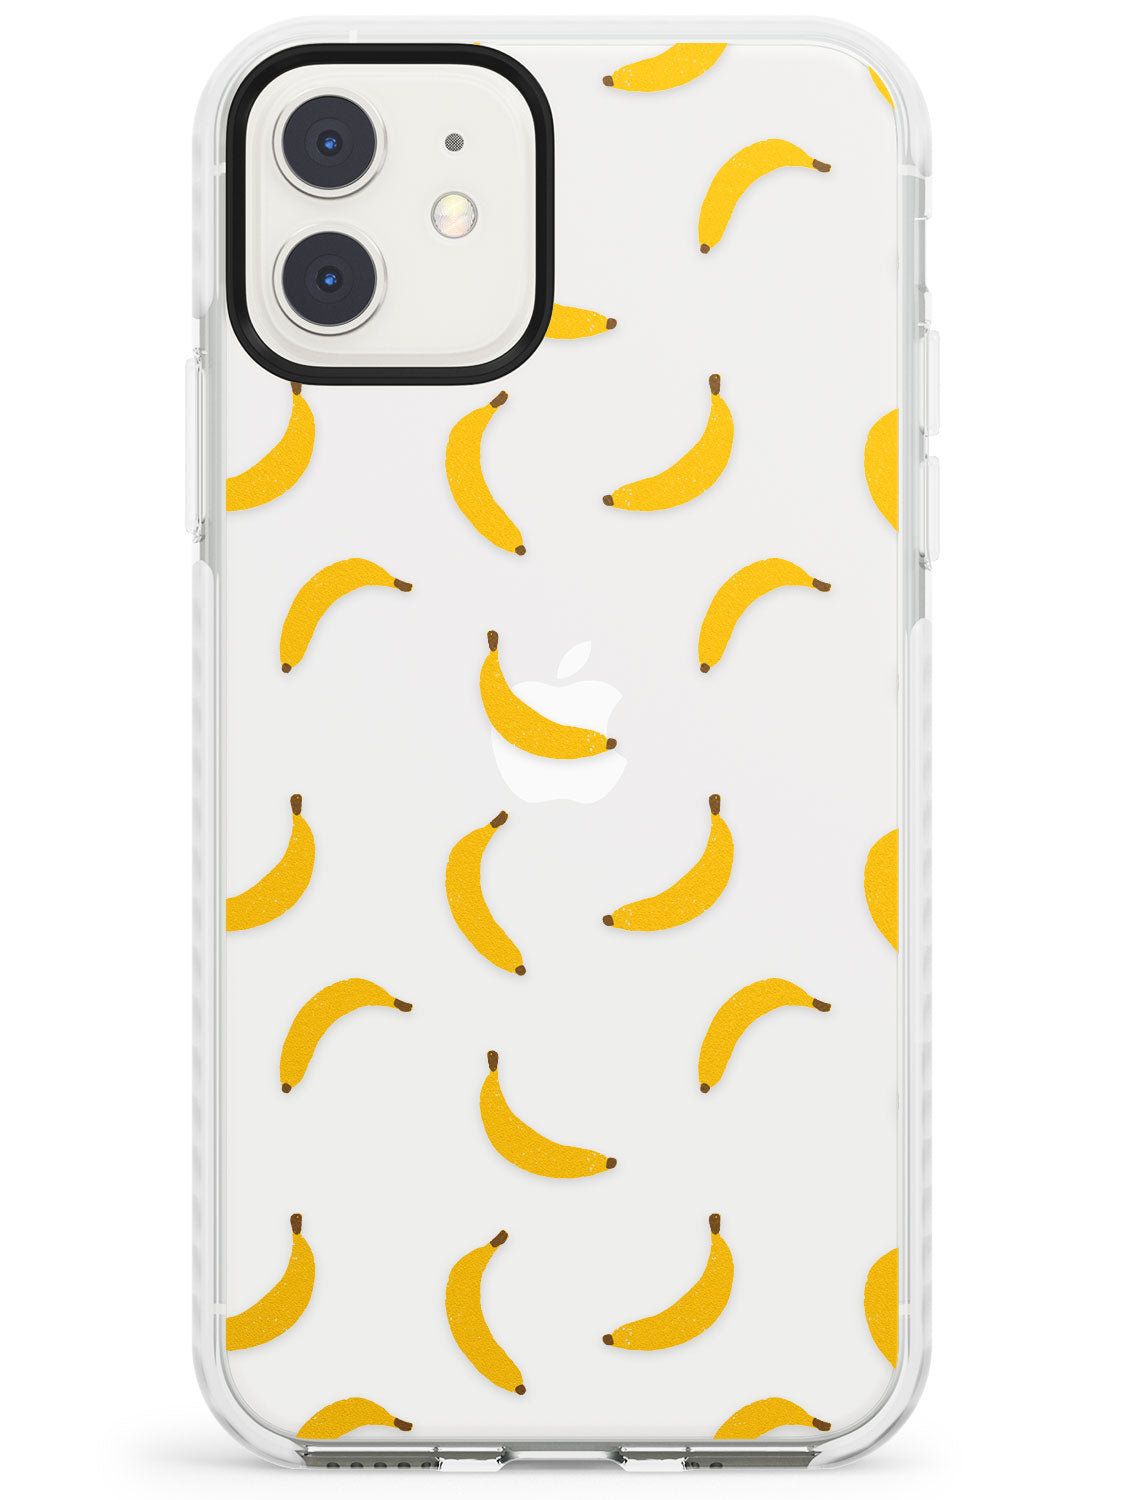 Banana Pattern iPhone Case by Case Warehouse ®